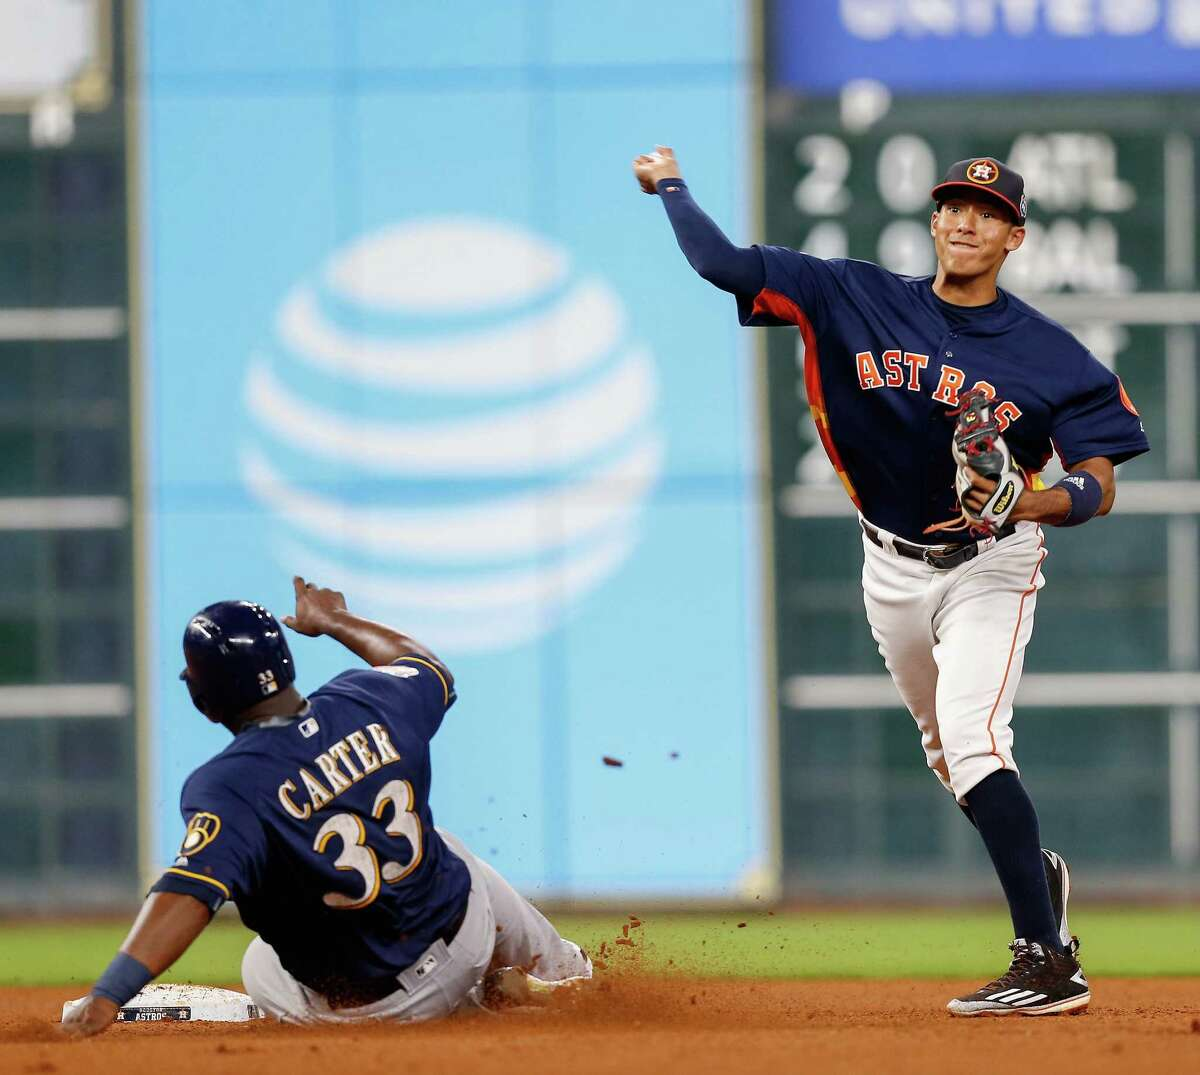 Houston Astros' Carlos Correa (1) throws to first base to complete a double play in the second inning as Milwaukee Brewers' Chris Carter (33) slides into second base during a spring training baseball game Thursday, March 31, 2016, in Houston.